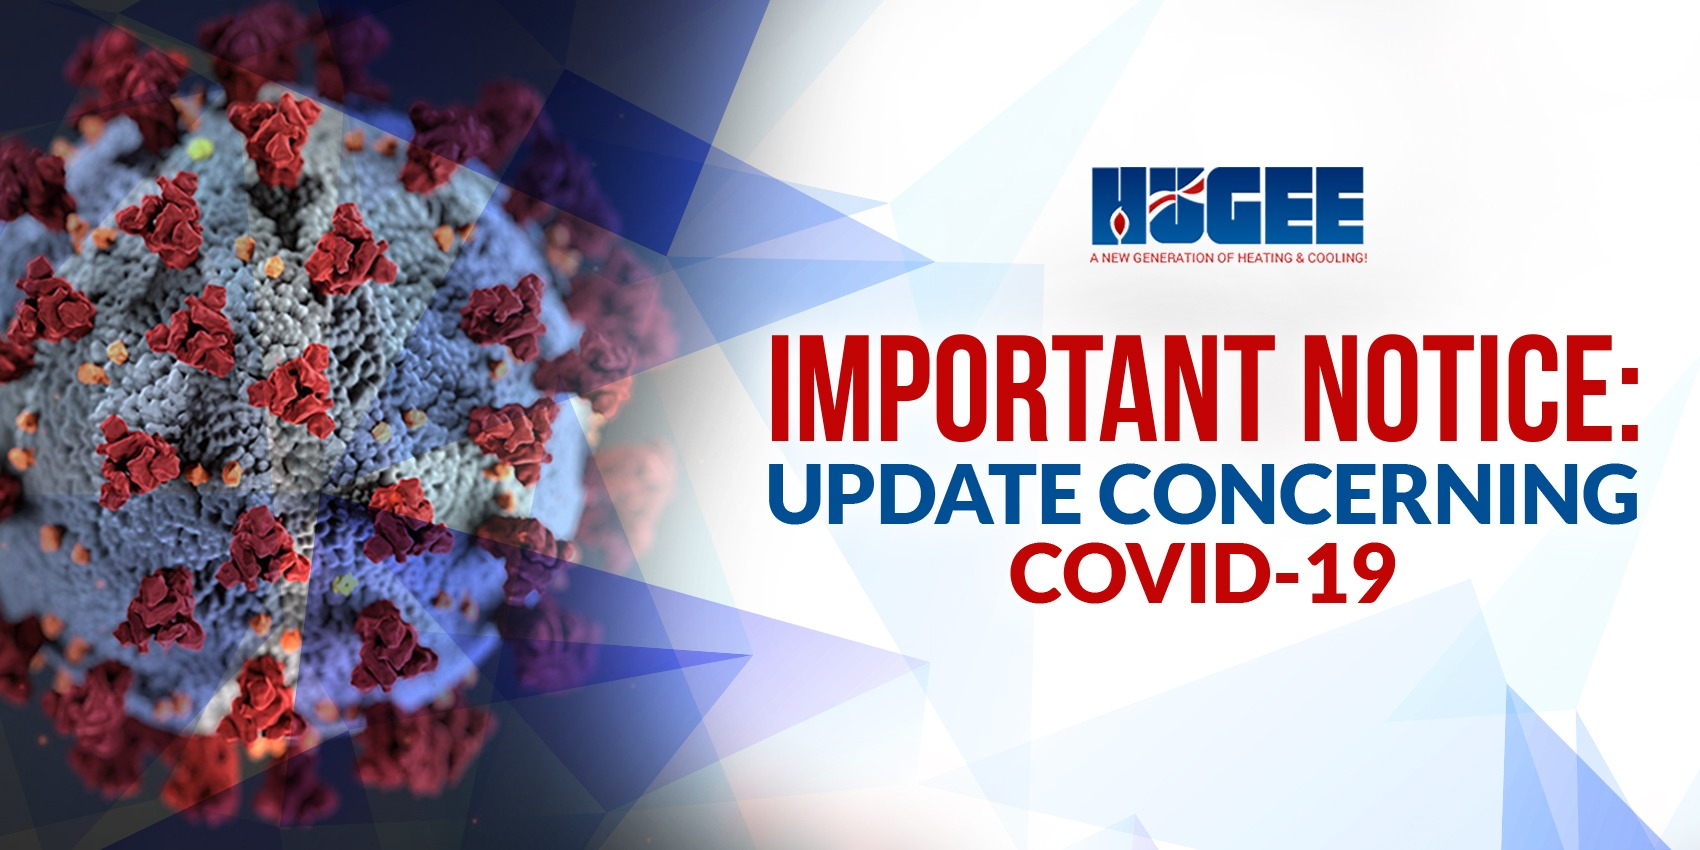 Important notice about COVID-19